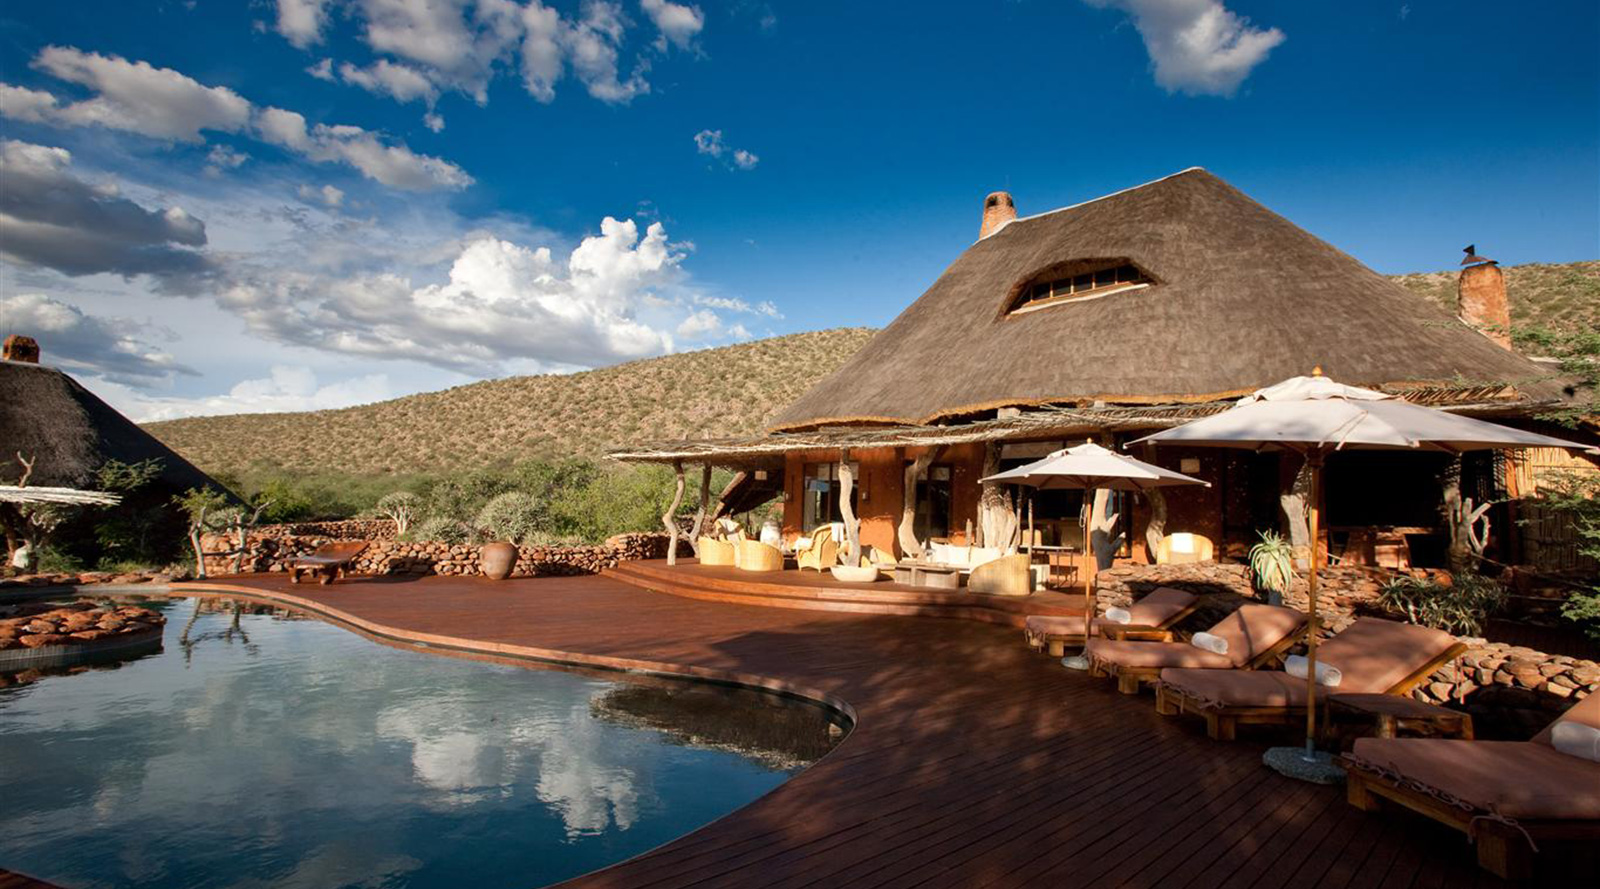 © Tswalu Kalahari Private Game Reserve | Tswalu Kalahari Private Game Reserve, South Africa